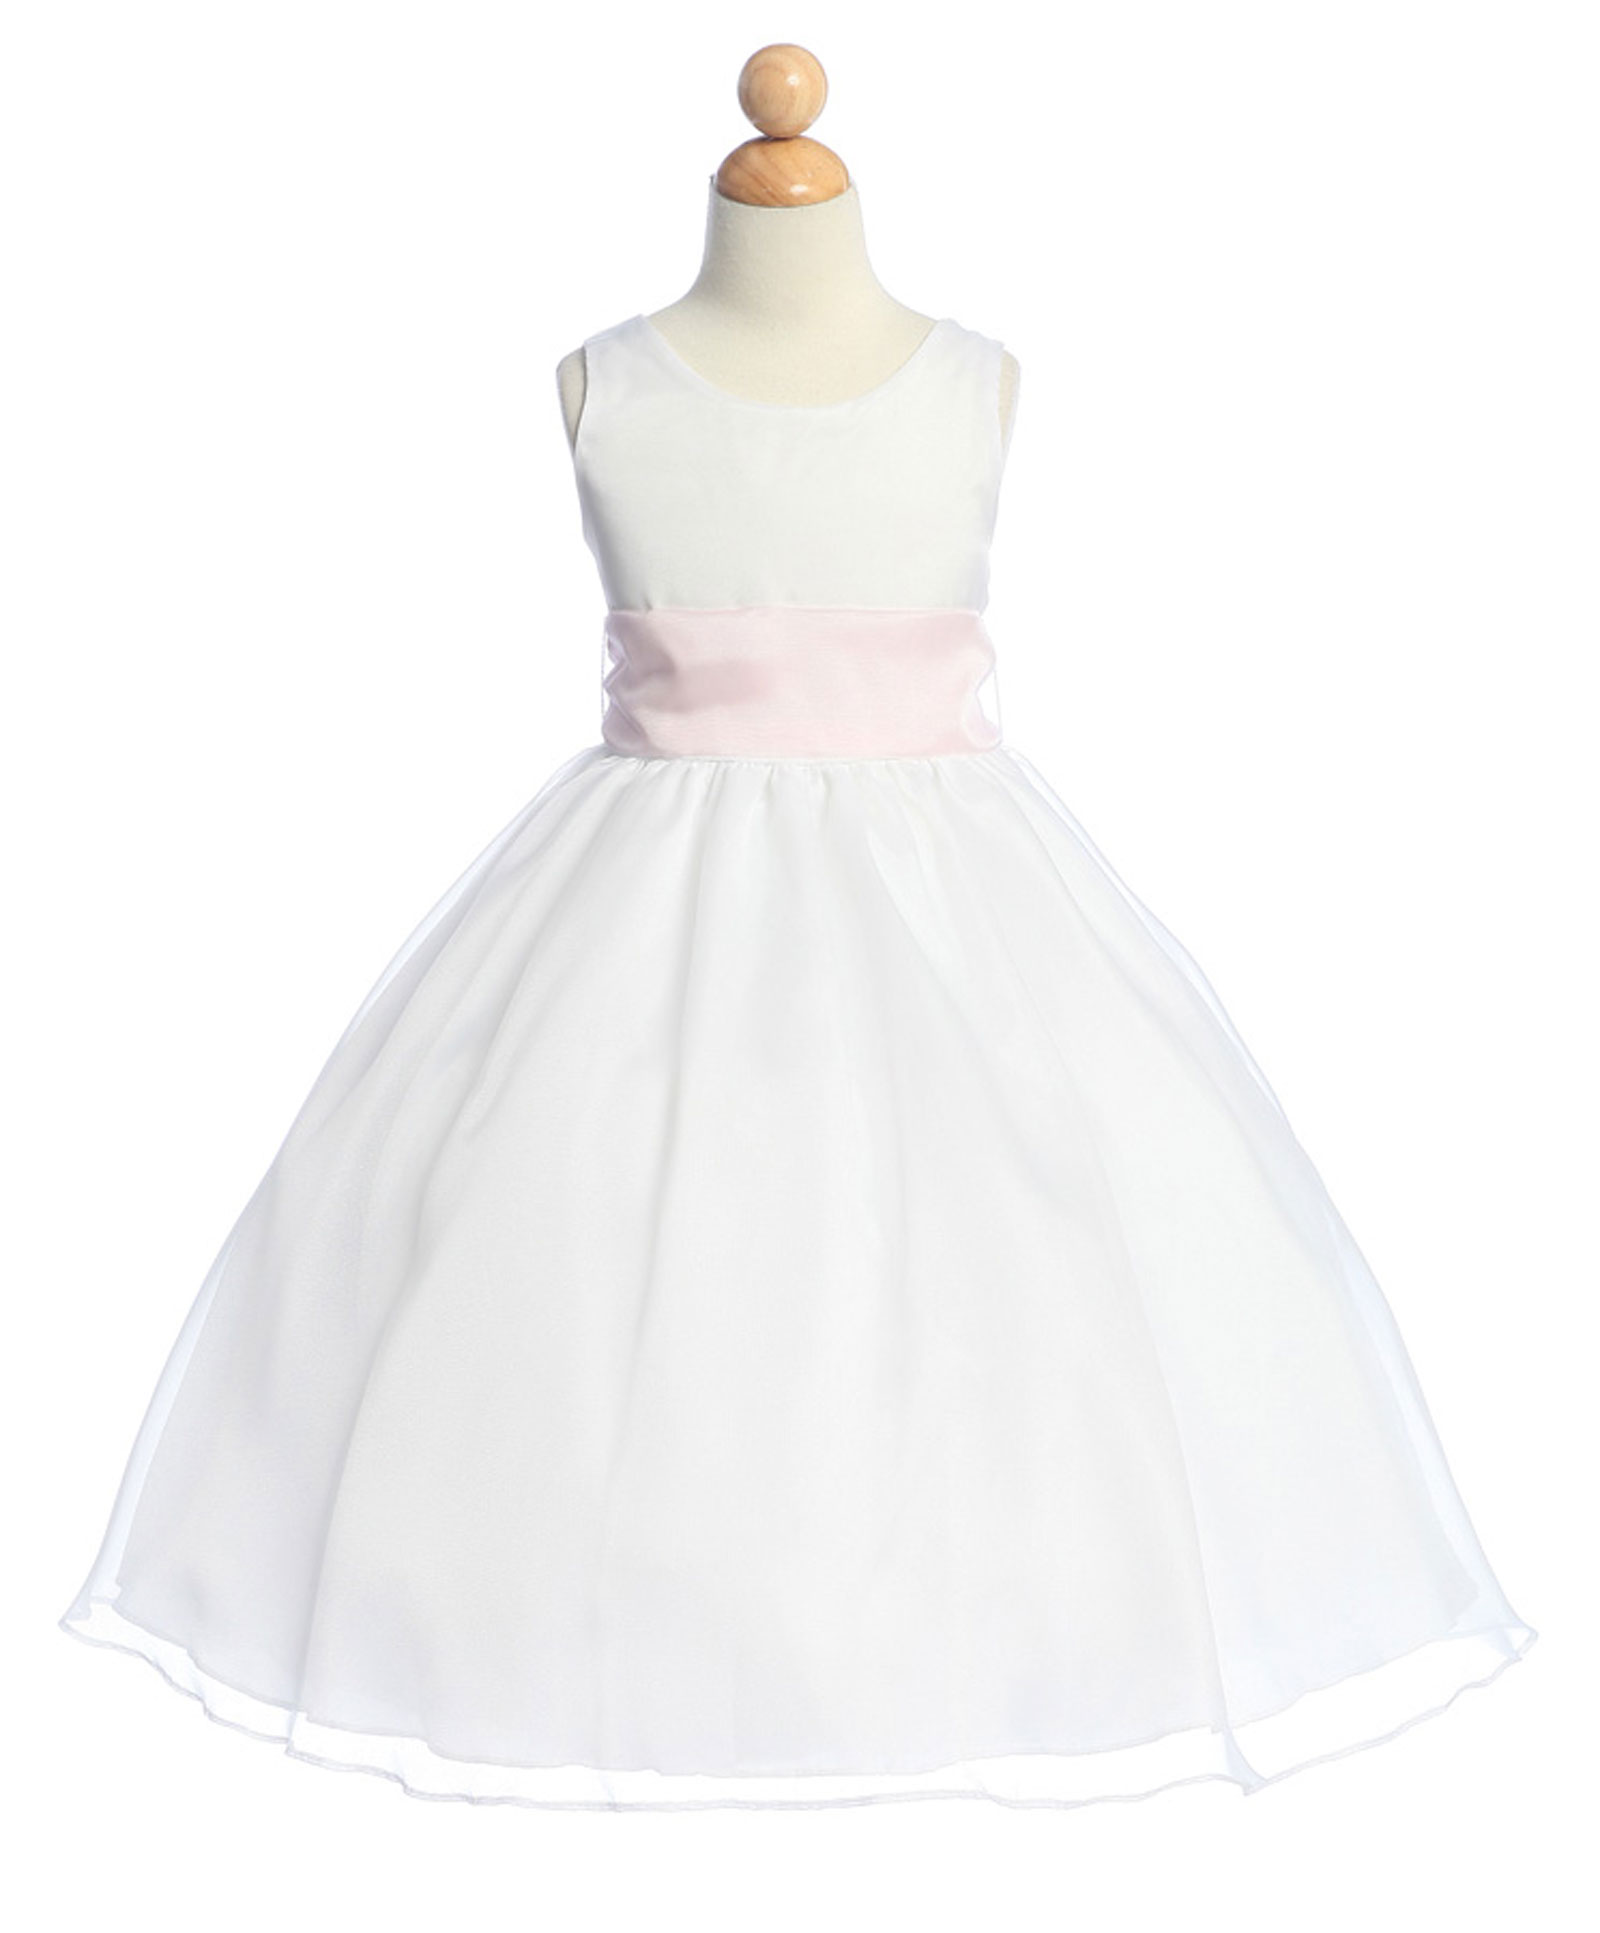 CA B519LP O Girls Dress Style 519 Organza Dress in Choice of White or Ivo